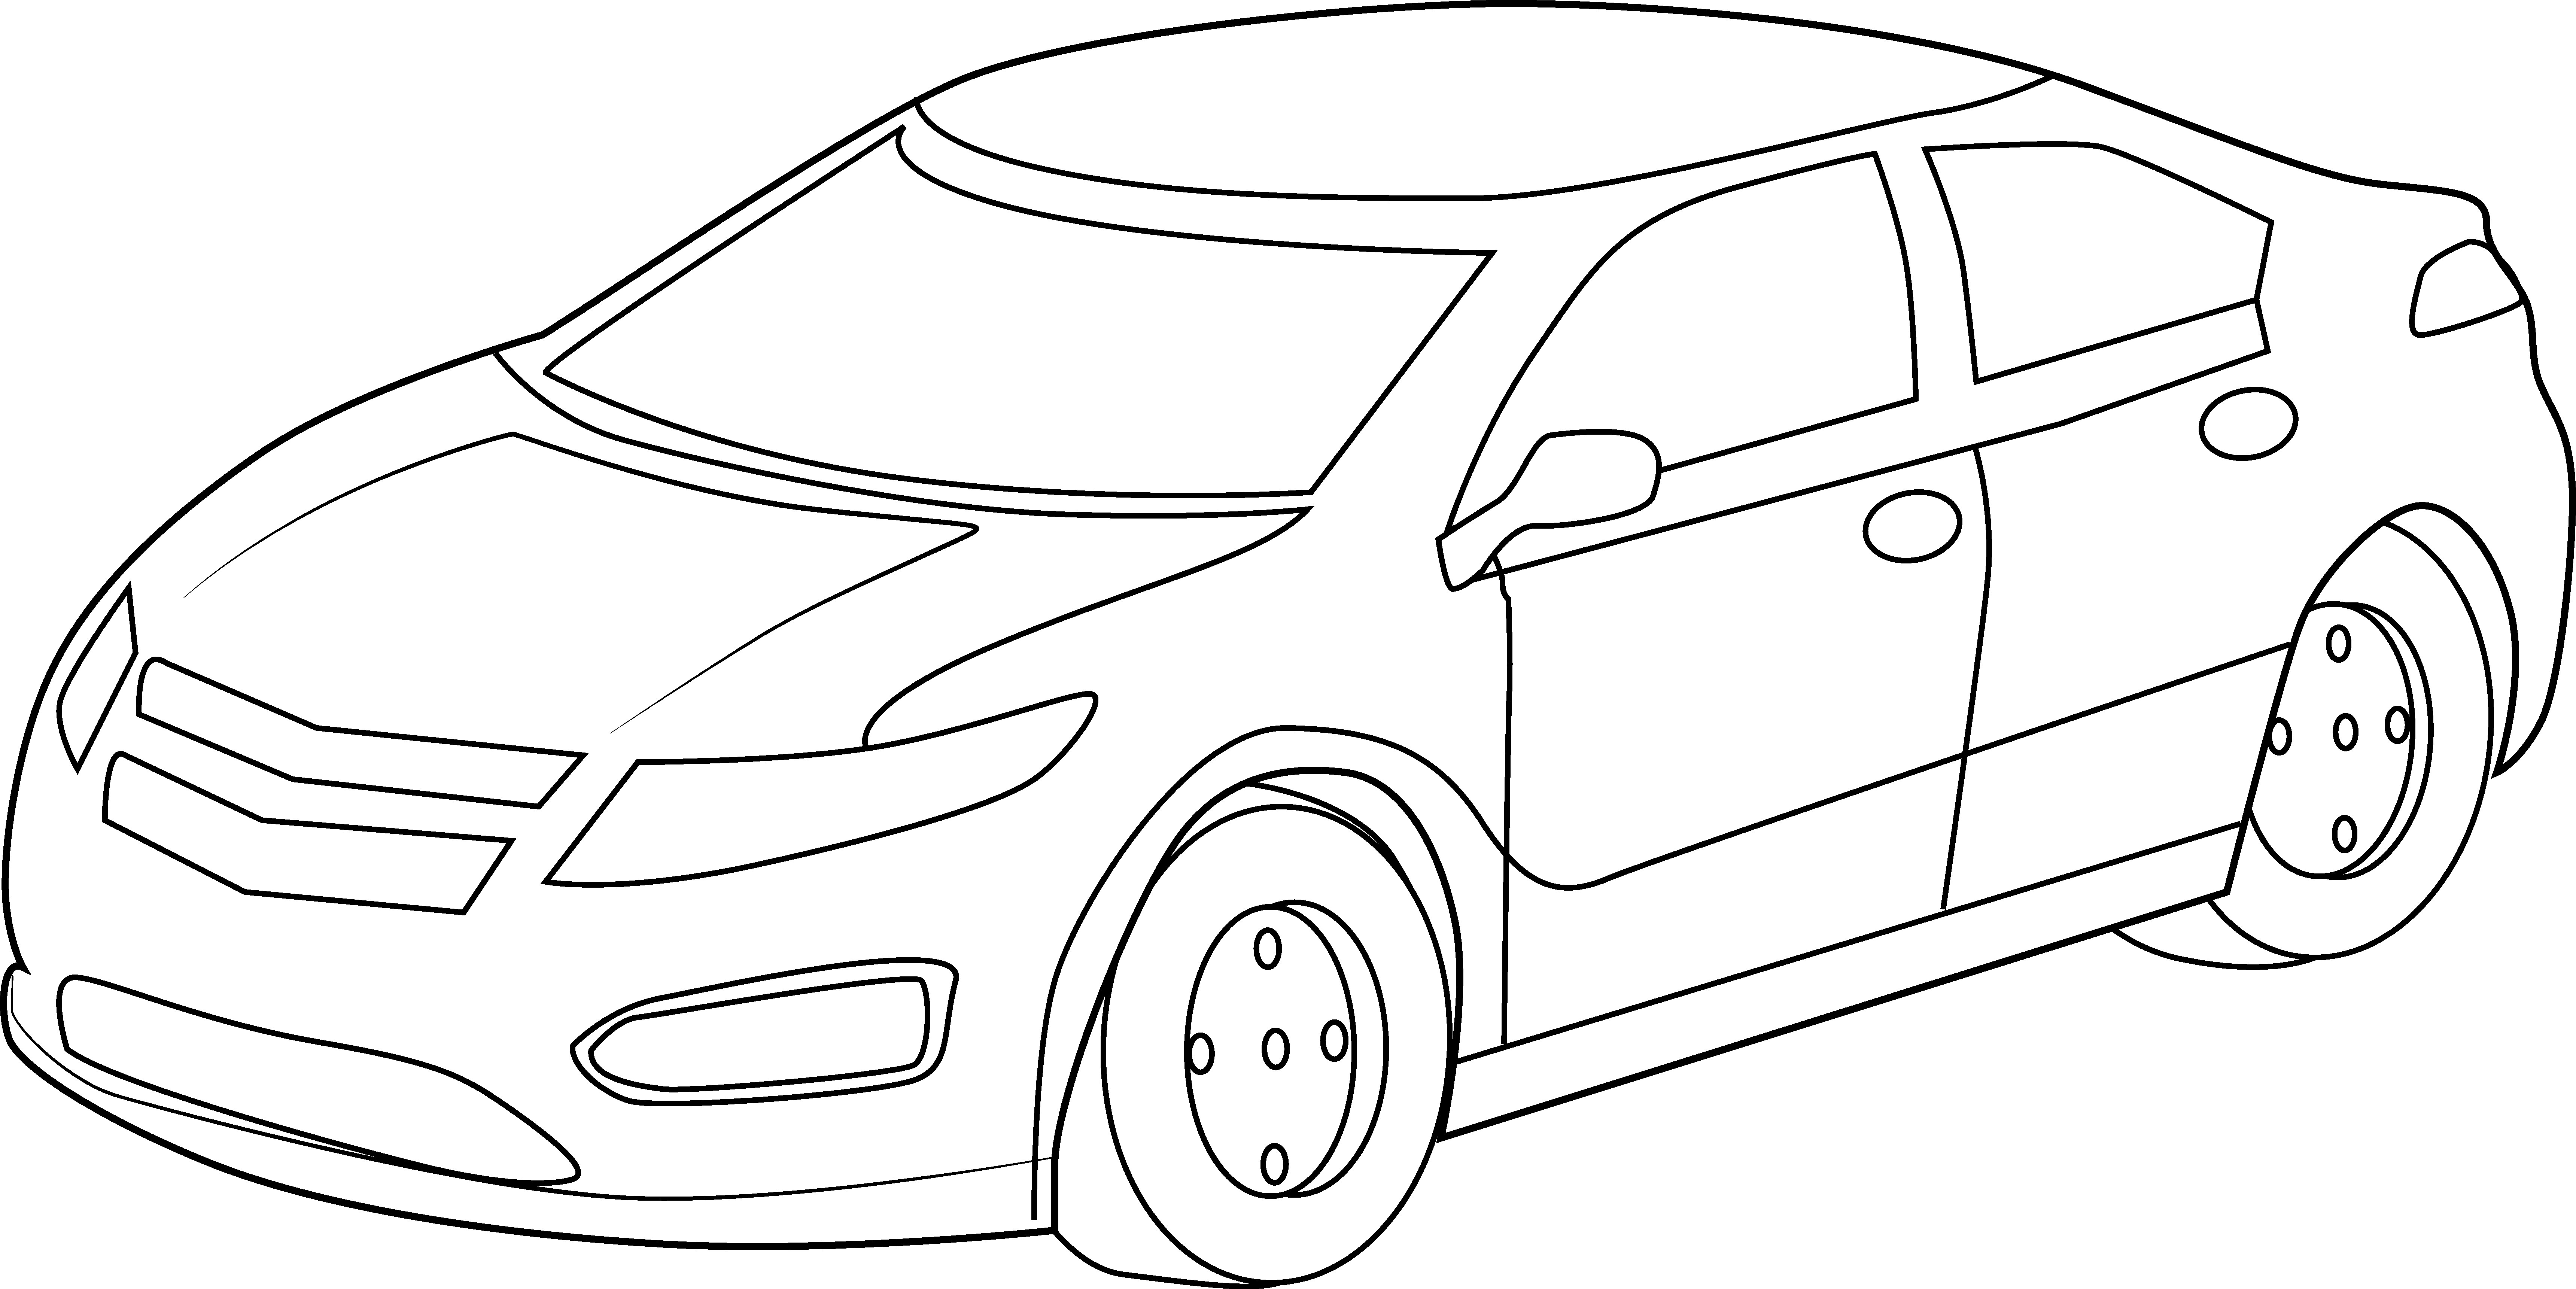 Sports Car Drawing Outline At Getdrawings Com Free For Personal